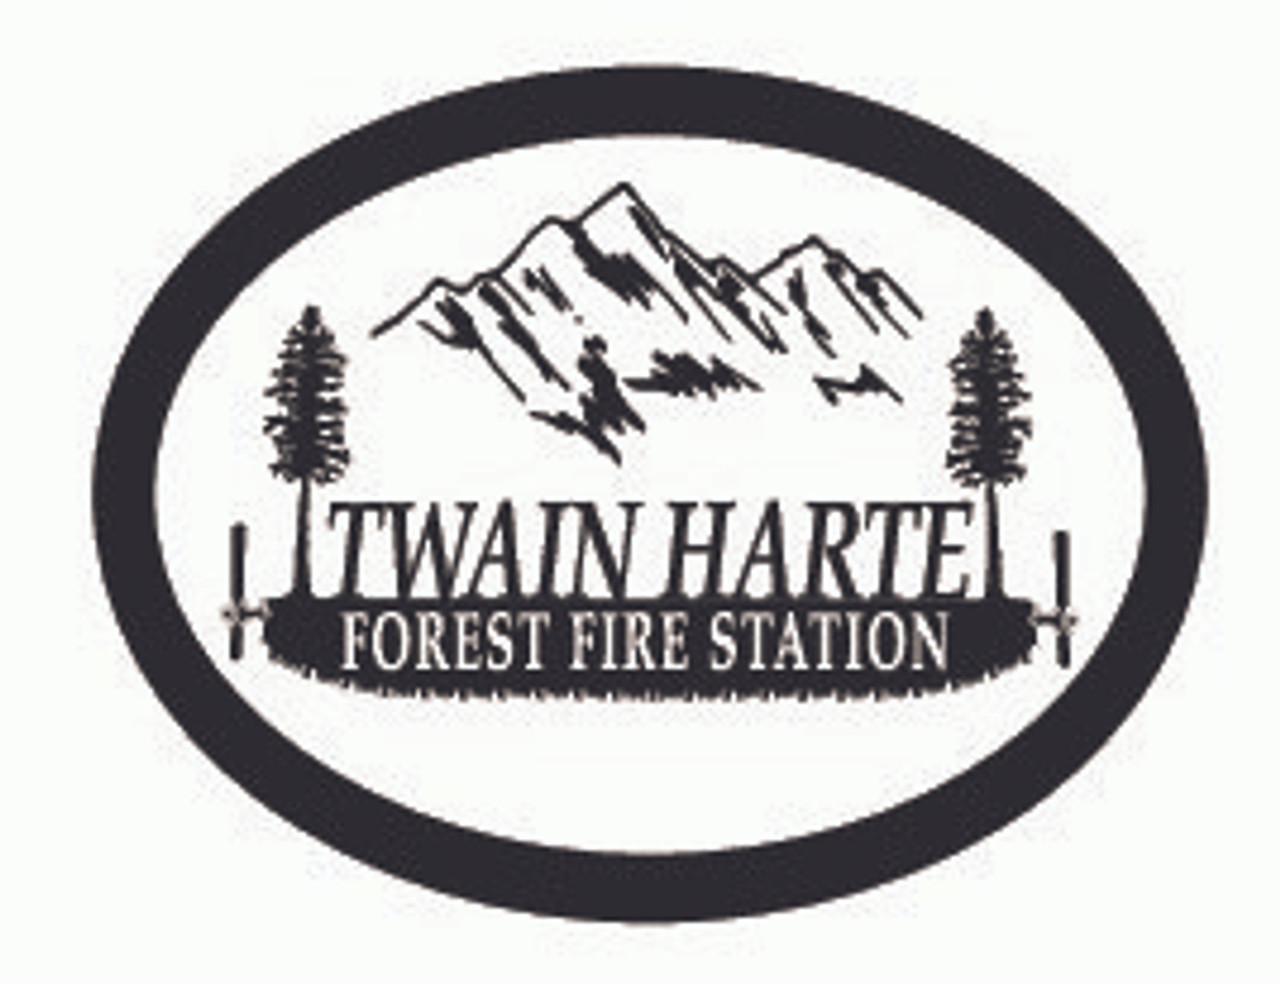 Twain Harte Forest Fire Station Buckle - Standard (RESTRICTED)